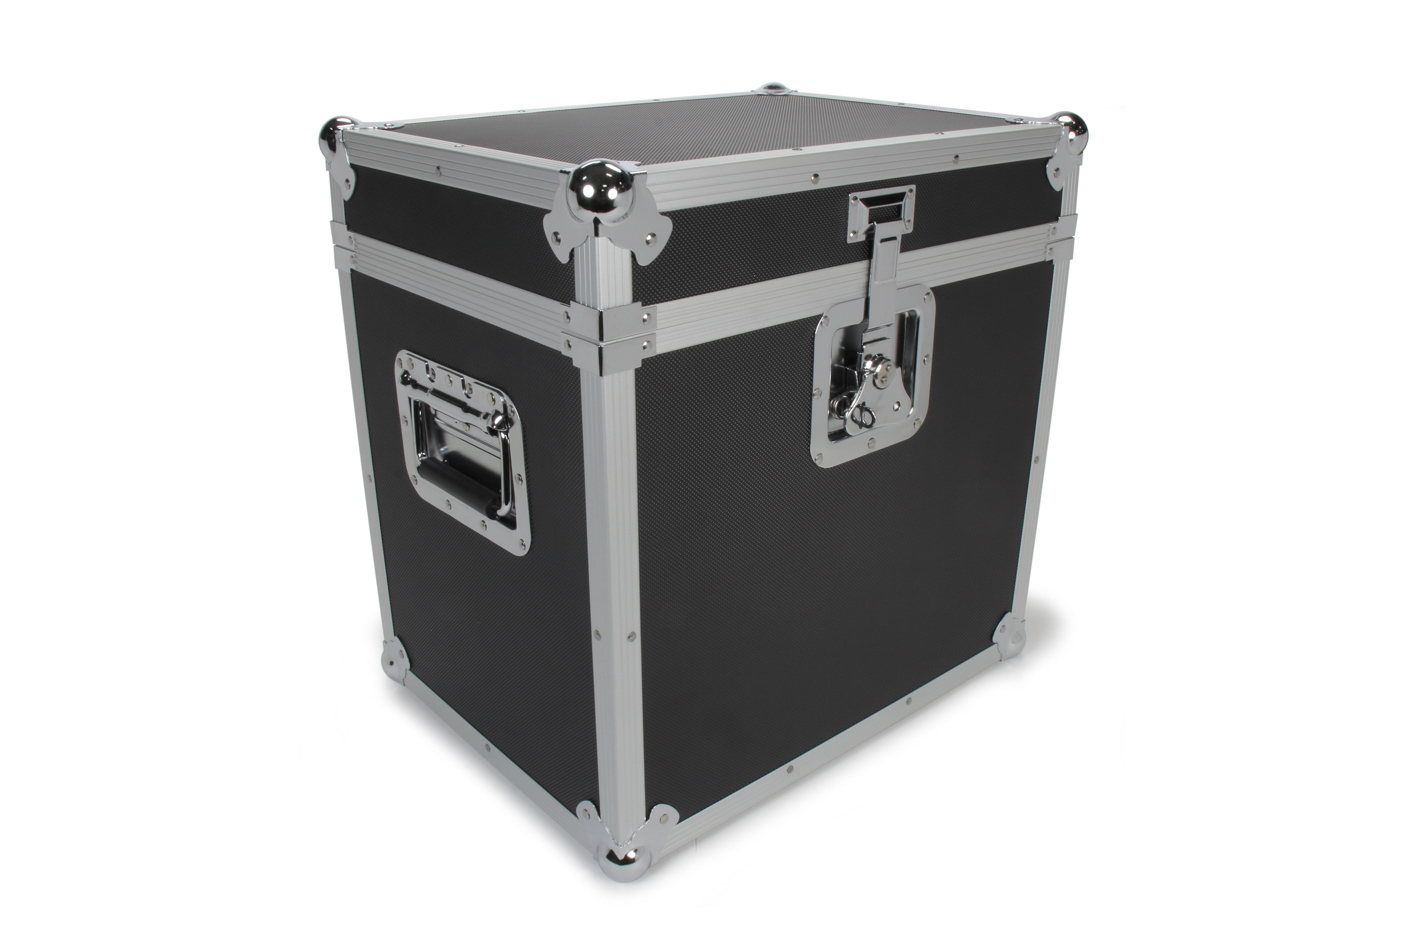 Intercomp 490197 Scale Storage Case, 17.7 x 17.7 x 13.5 in, Foamed Lined, Holds Four Scale Pads, Aluminum Frame, Each